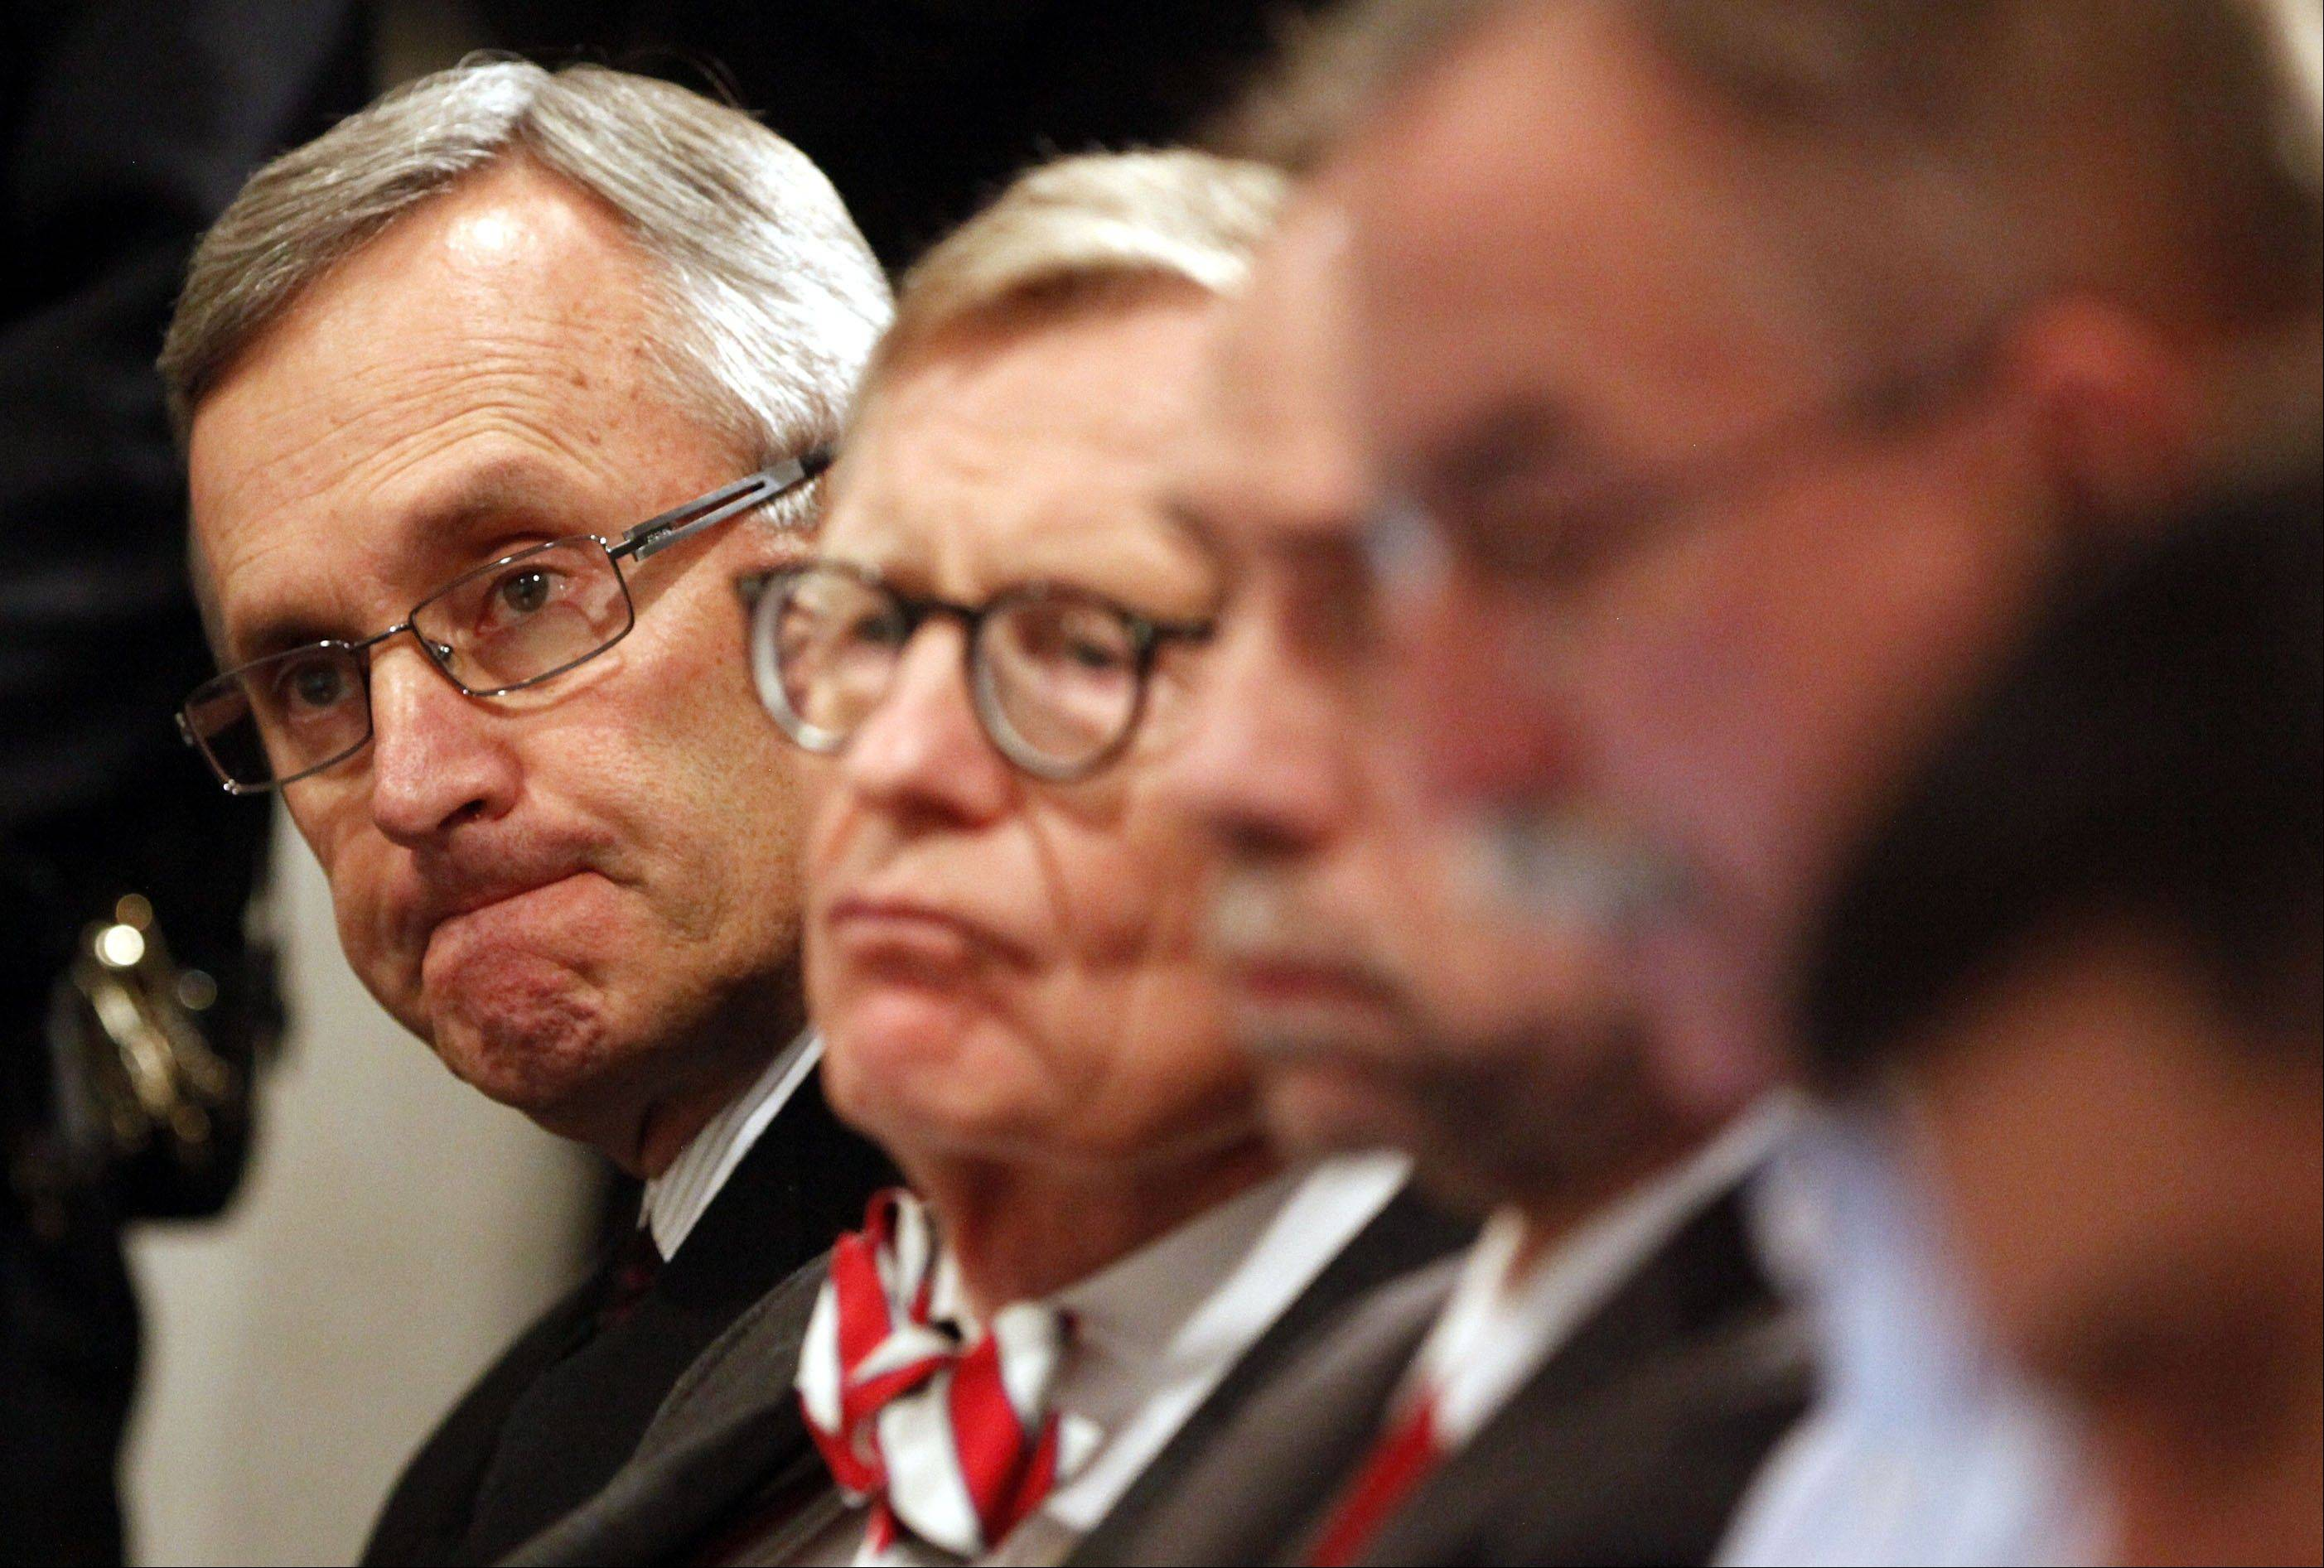 Ohio State football coach Jim Tressel, left, and university President E. Gordon Gee, second from left, listen as athletic director Gene Smith speaks during a news conference in Columbus, Ohio. Gee made $1.9 million last year as the highest-paid public university president in the U.S.